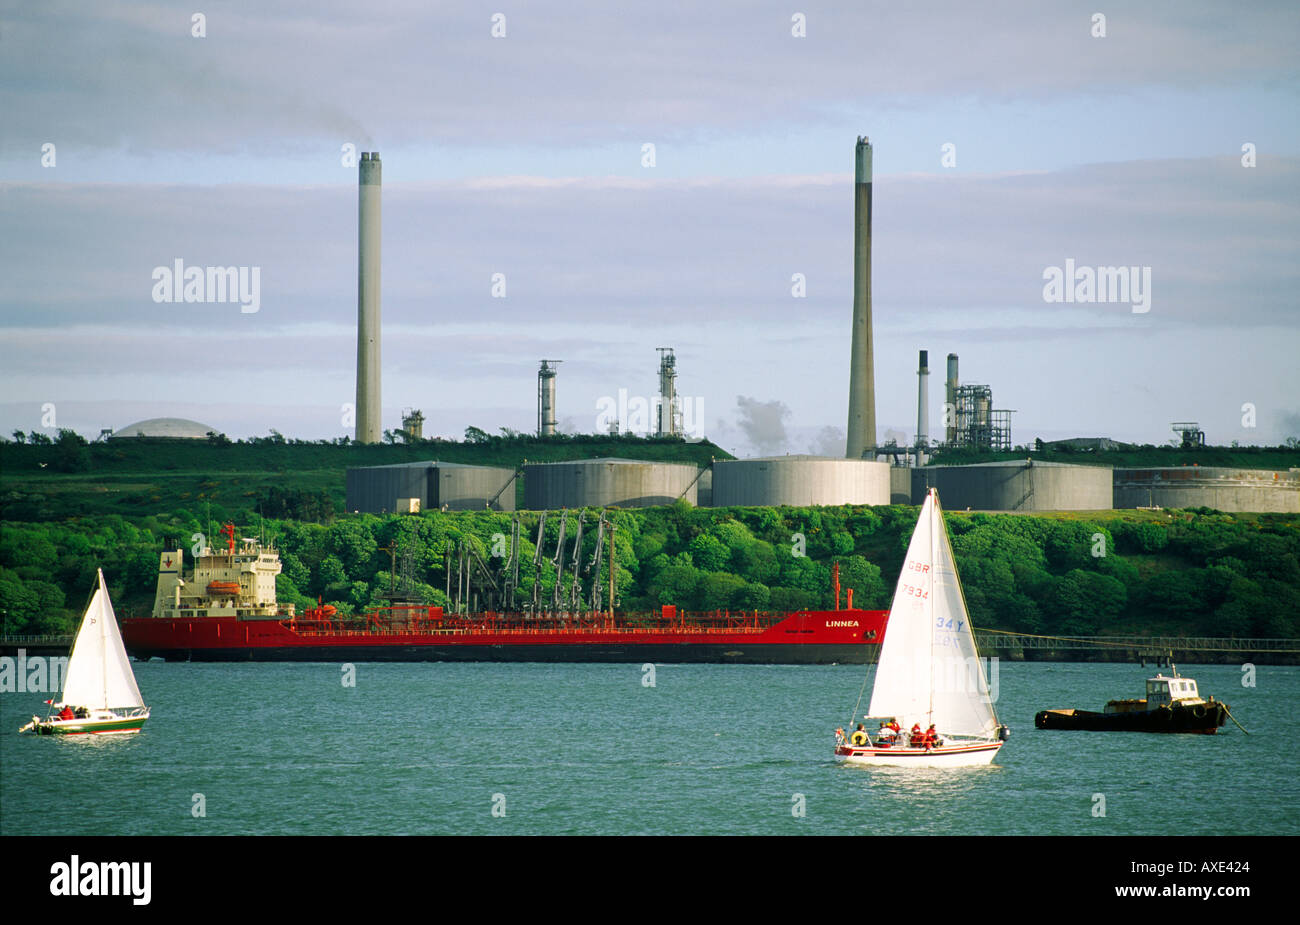 Oil terminal refinery LPG LNG industry terminal and tanker at petrochemical industrial complex at Milford Haven, Wales, UK Stock Photo